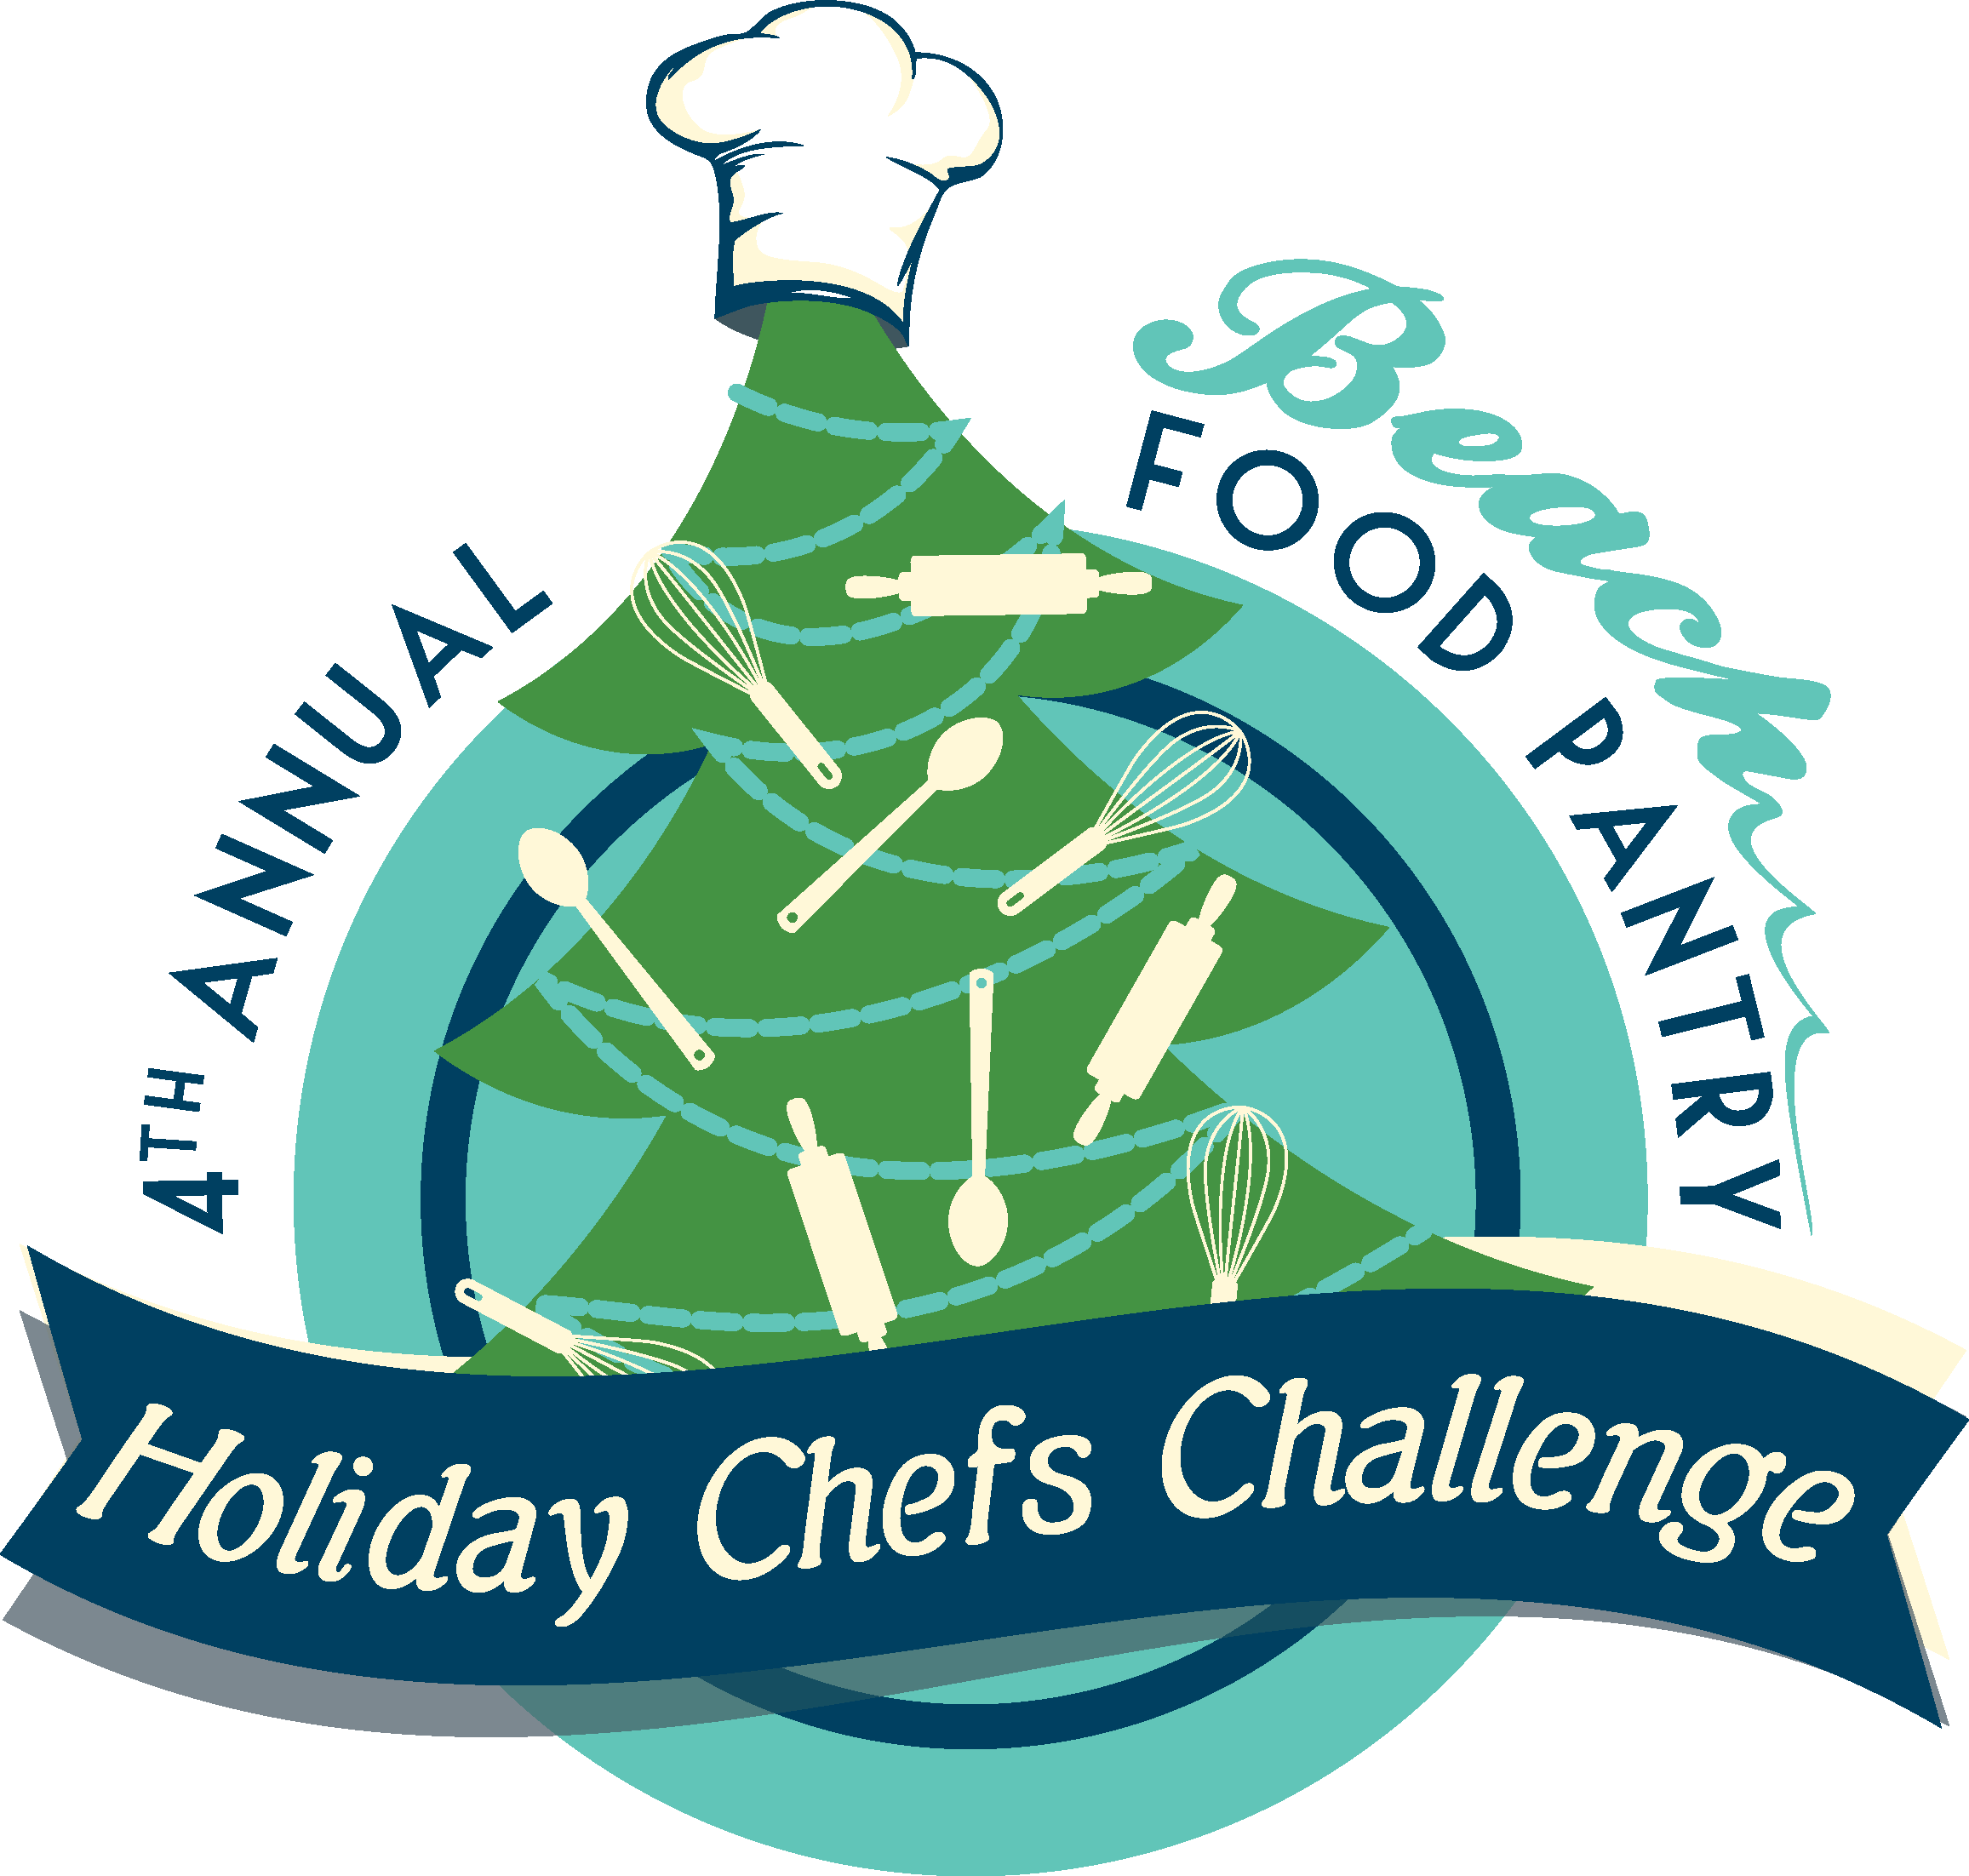 4th Annual Holiday Chefs Challenge